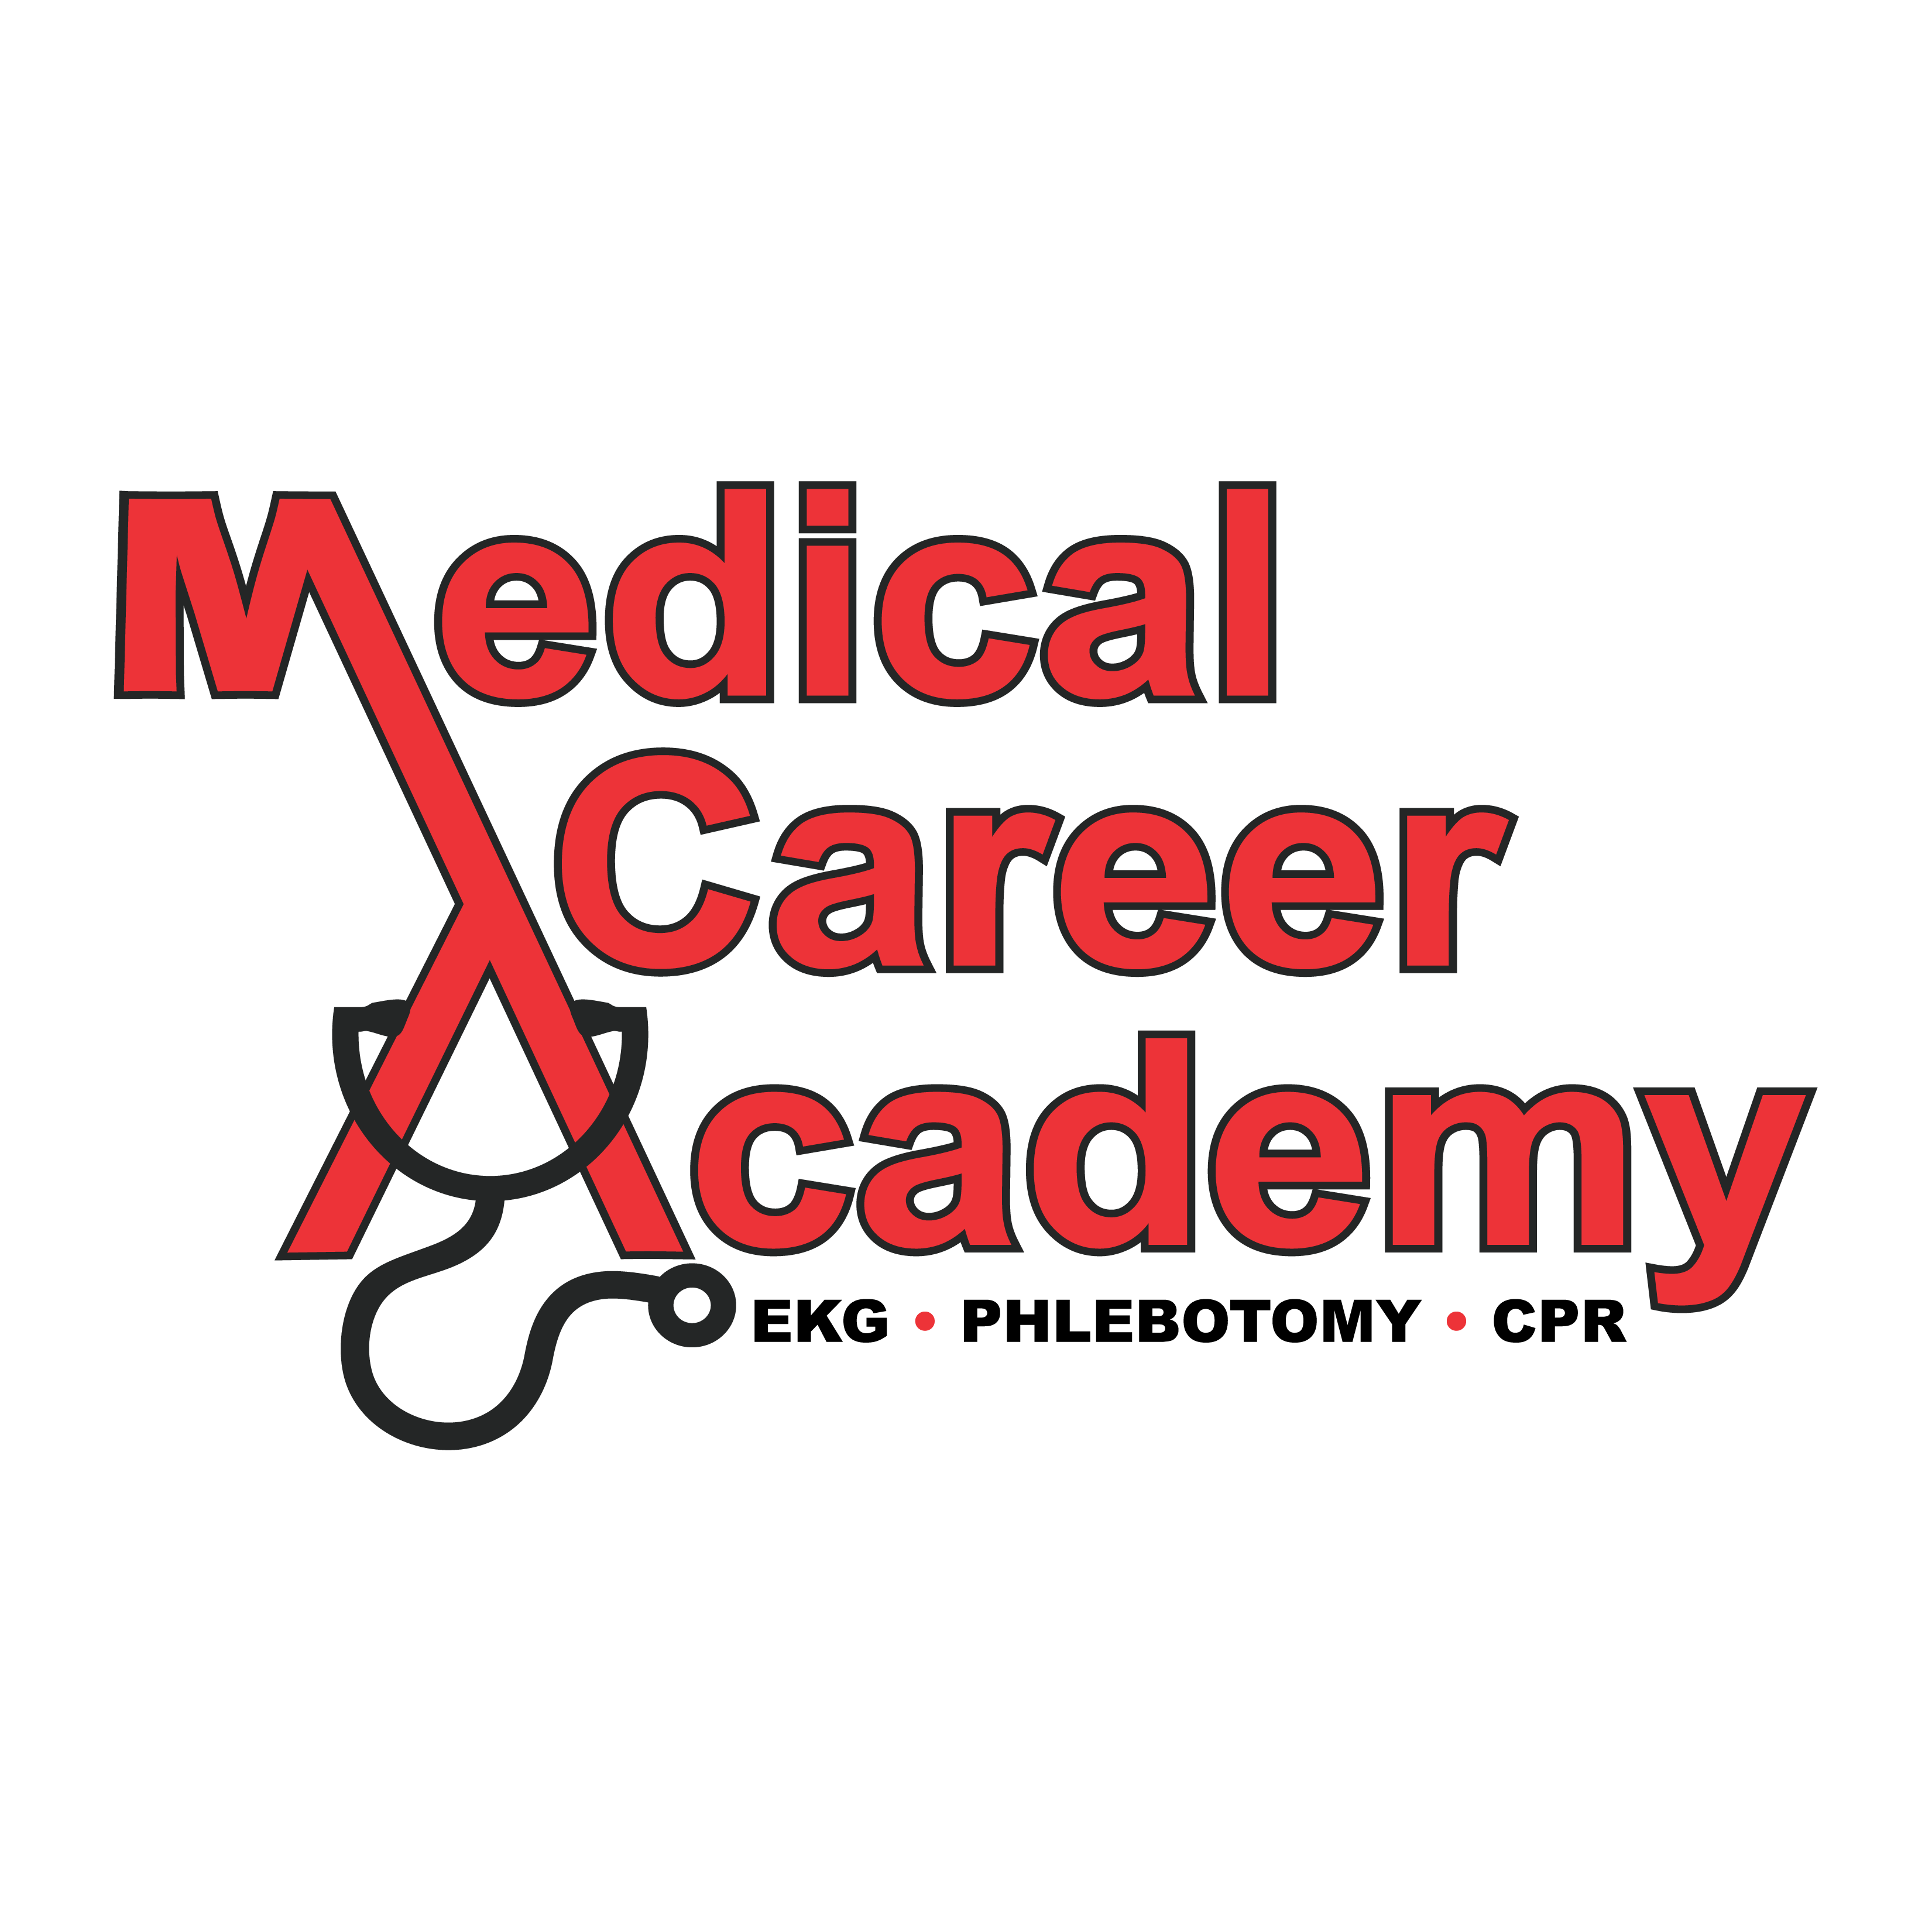 Medical Career Academy - Highland, IN 46322 - (219)276-6234 | ShowMeLocal.com